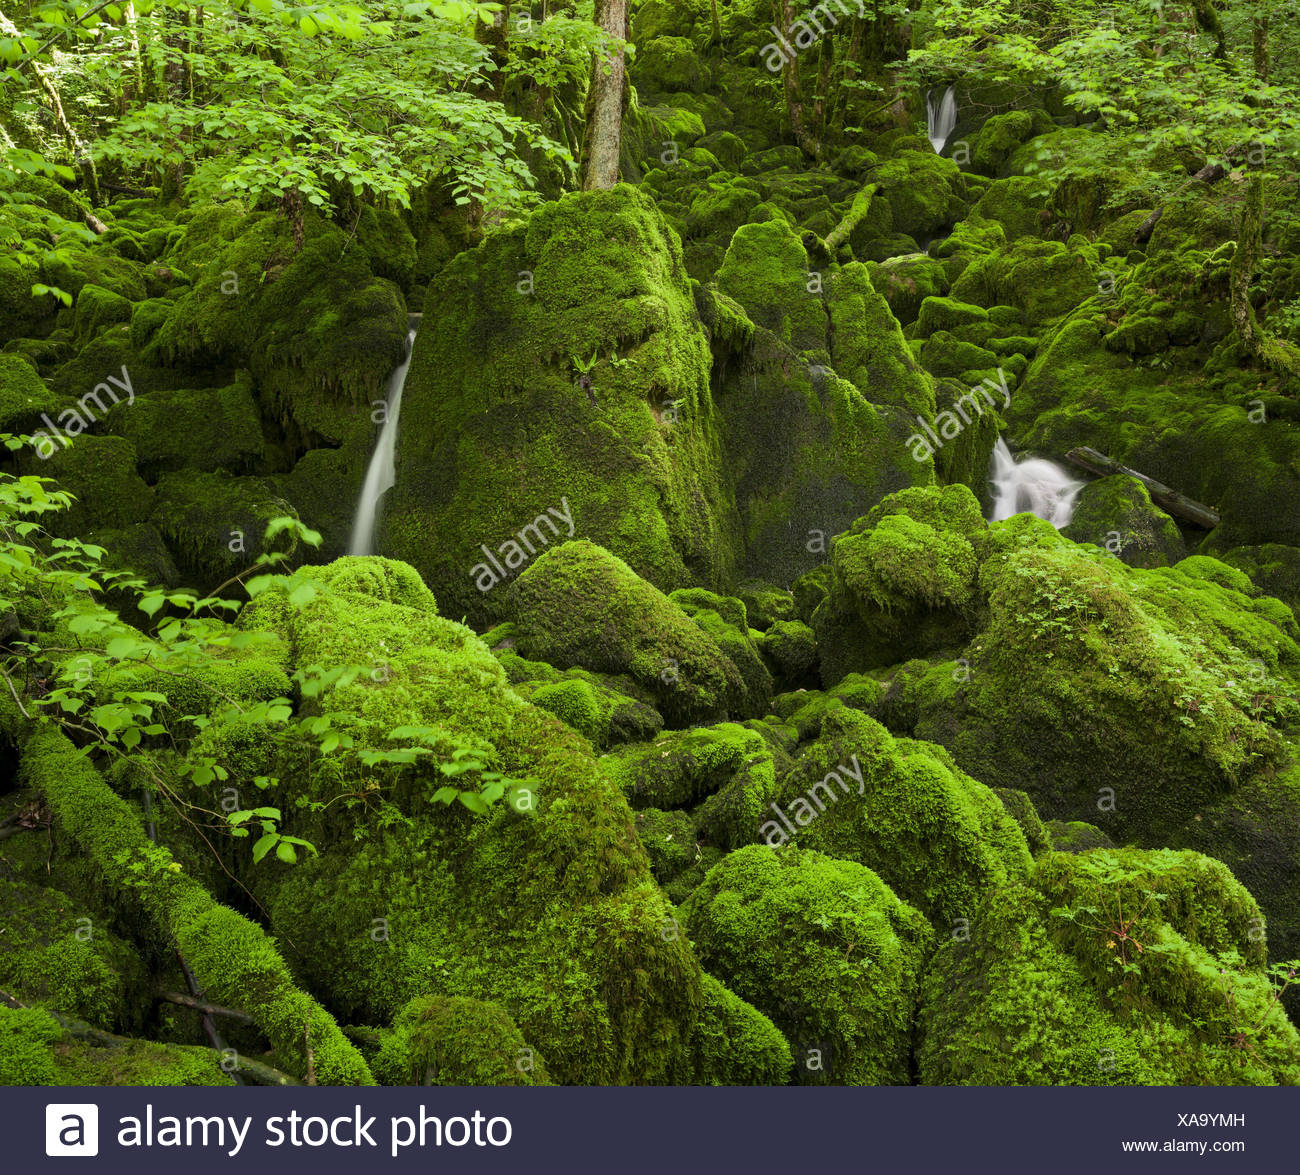 moss-overcast stones, close Arbois, law, France - Stock Image